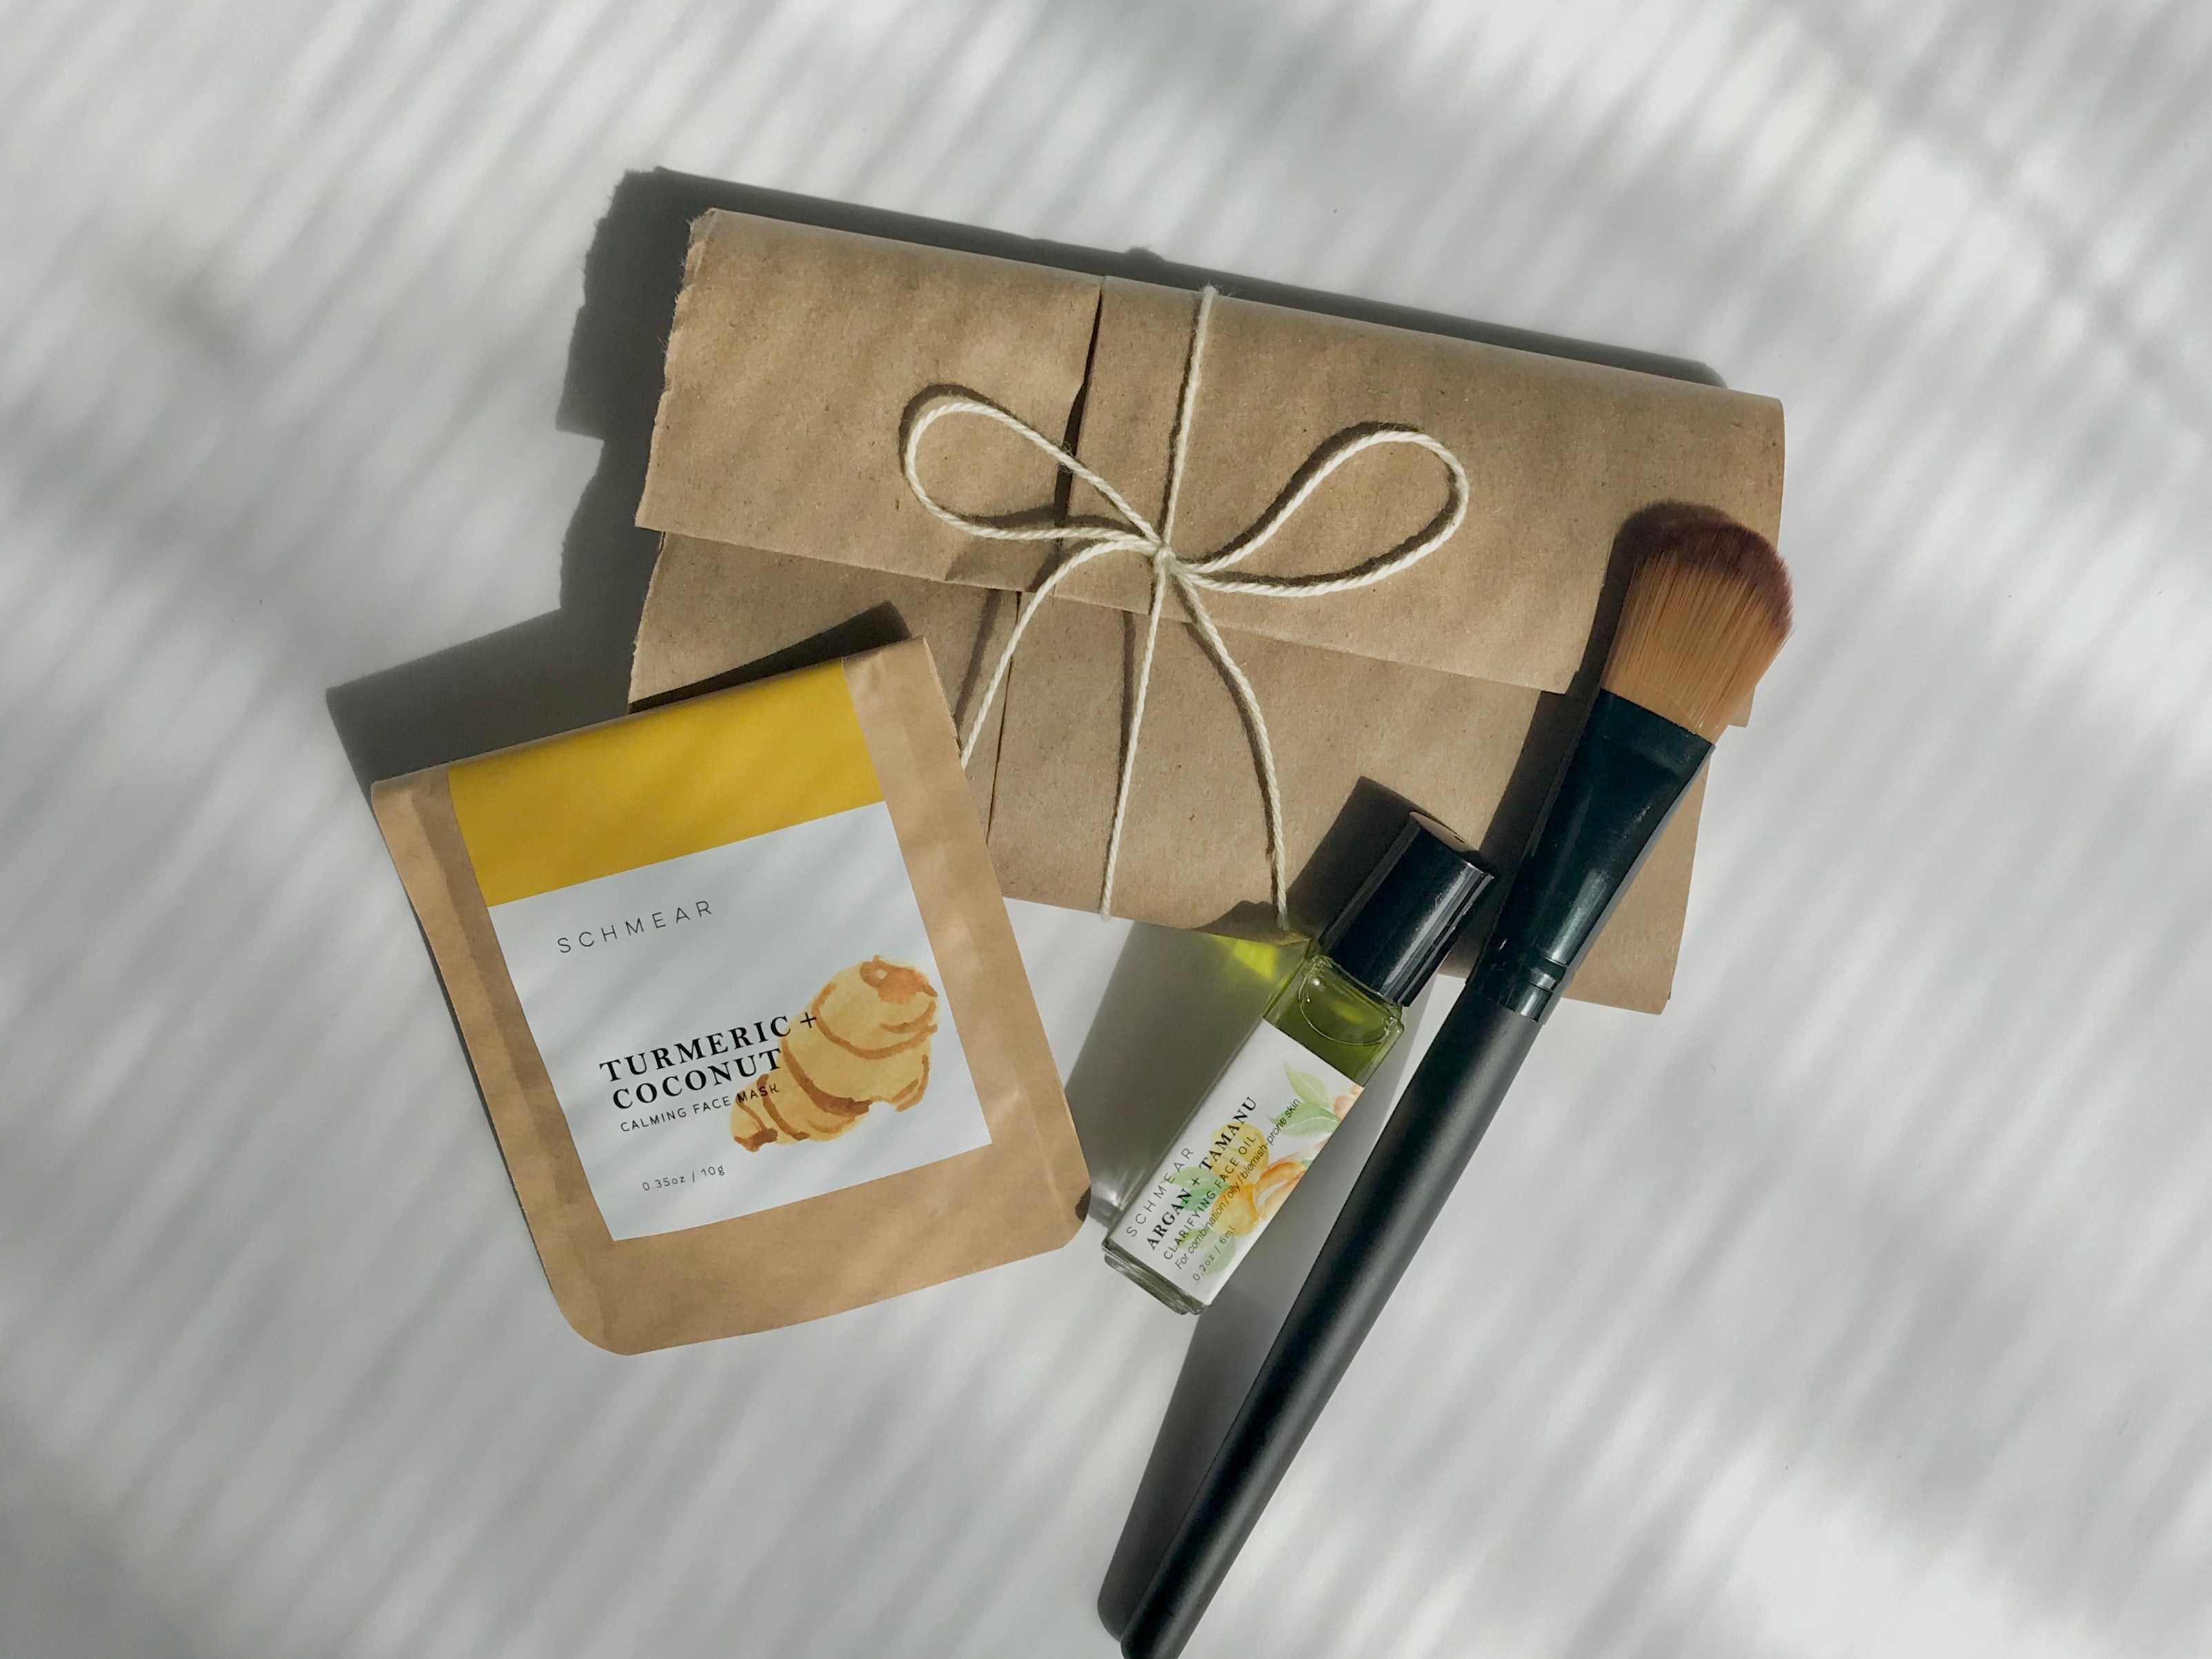 Clean Skincare Pamper Kit for Calming Skin